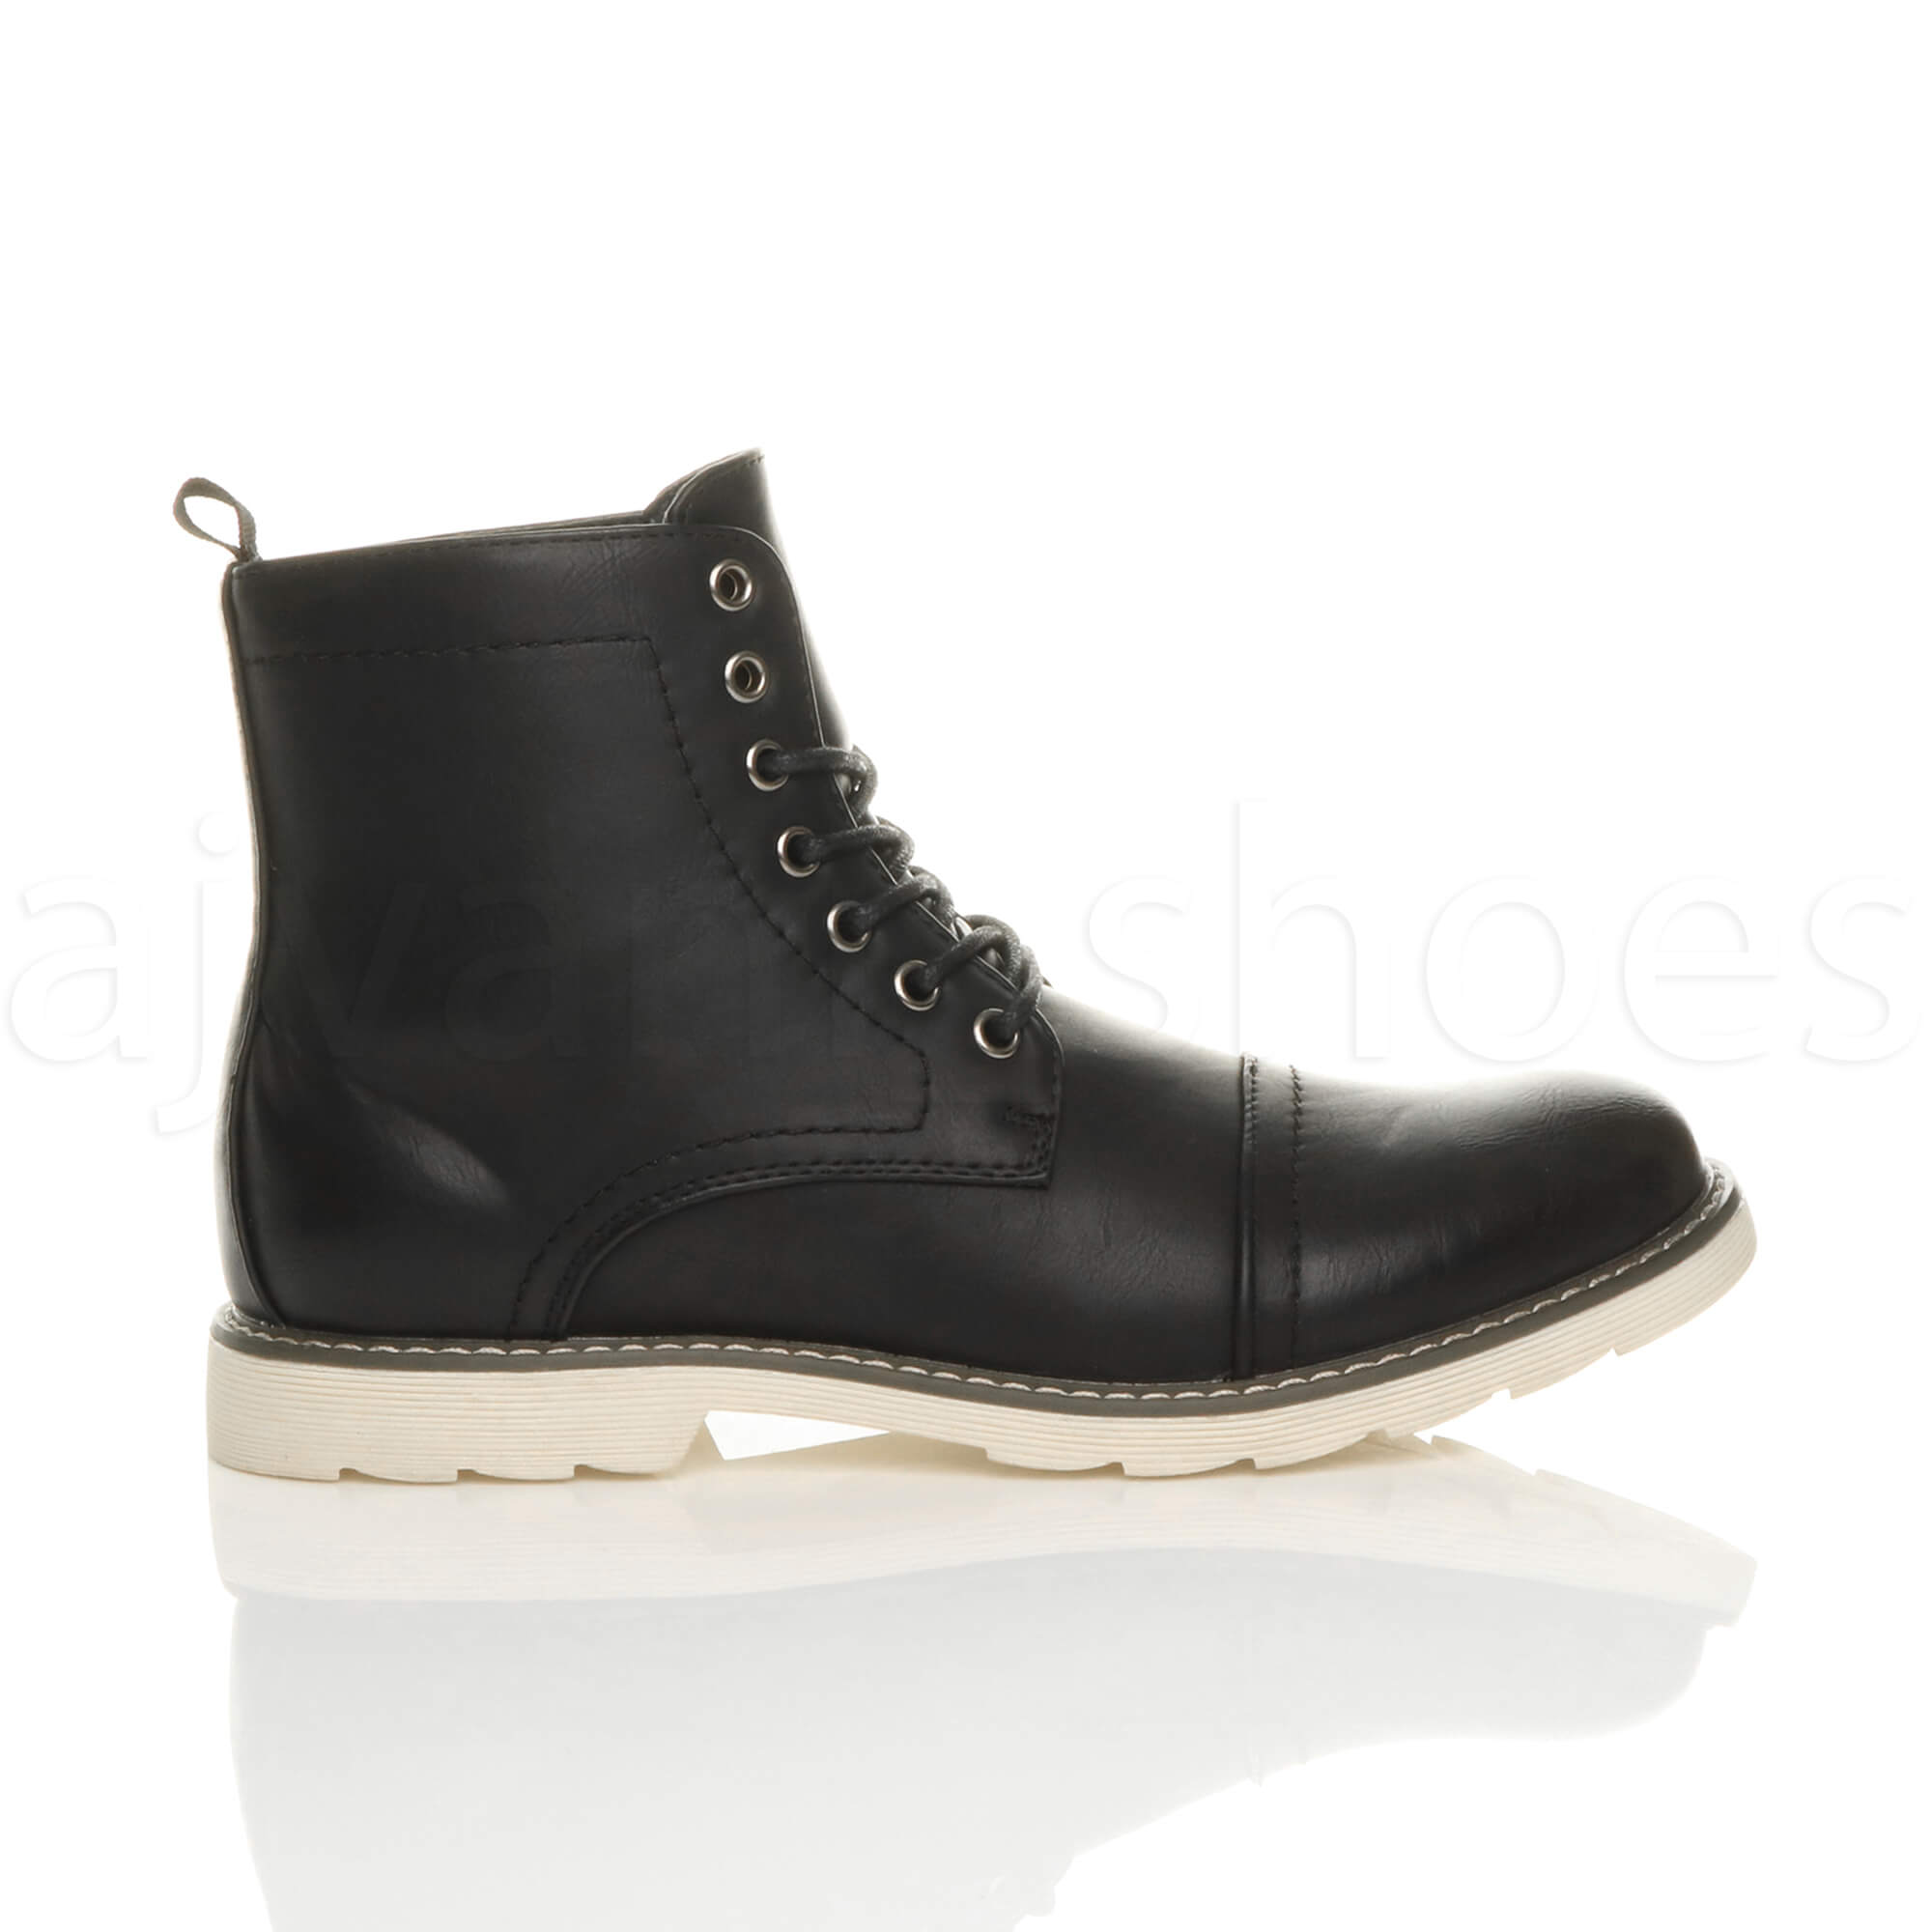 MENS-LACE-UP-CONTRAST-RUBBER-SOLE-SMART-WORK-CASUAL-MILITARY-ANKLE-BOOTS-SIZE